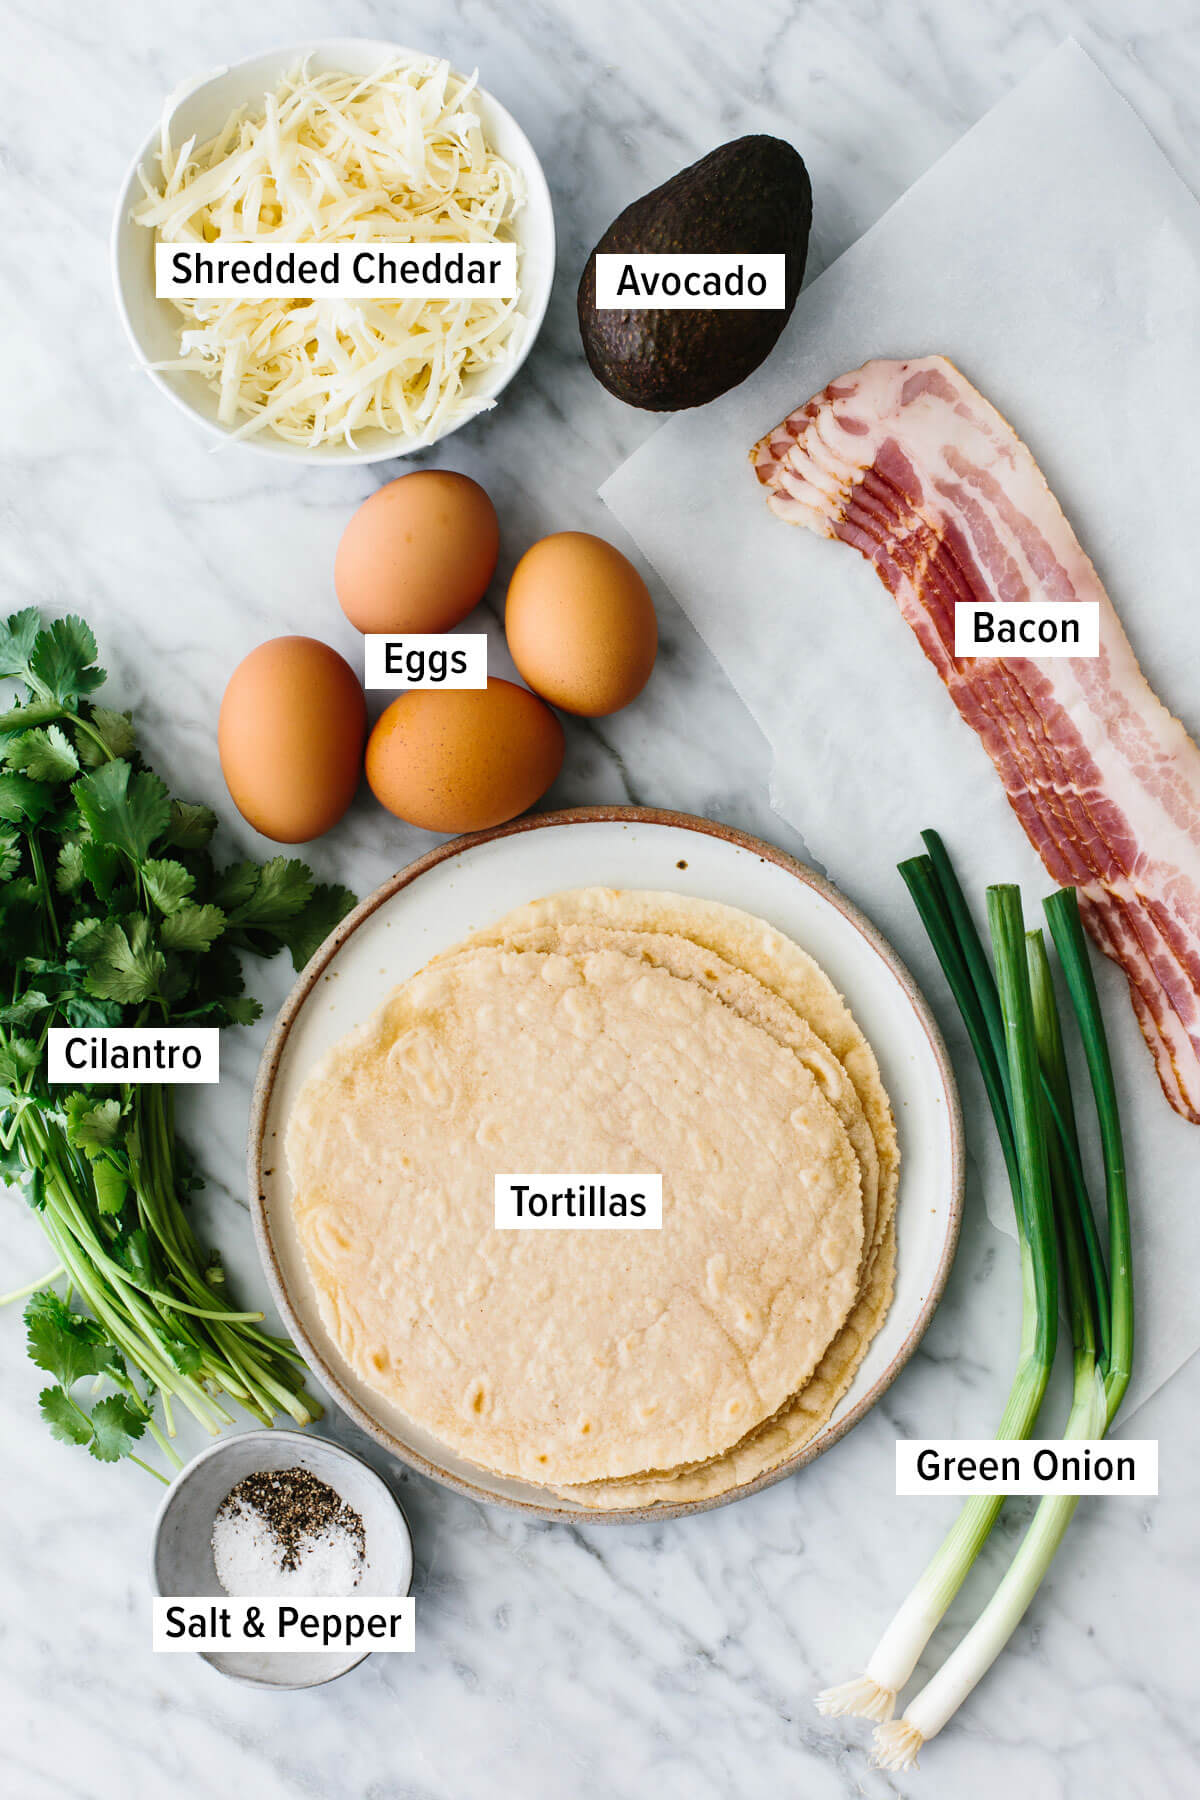 Ingredients for breakfast tacos on a table.